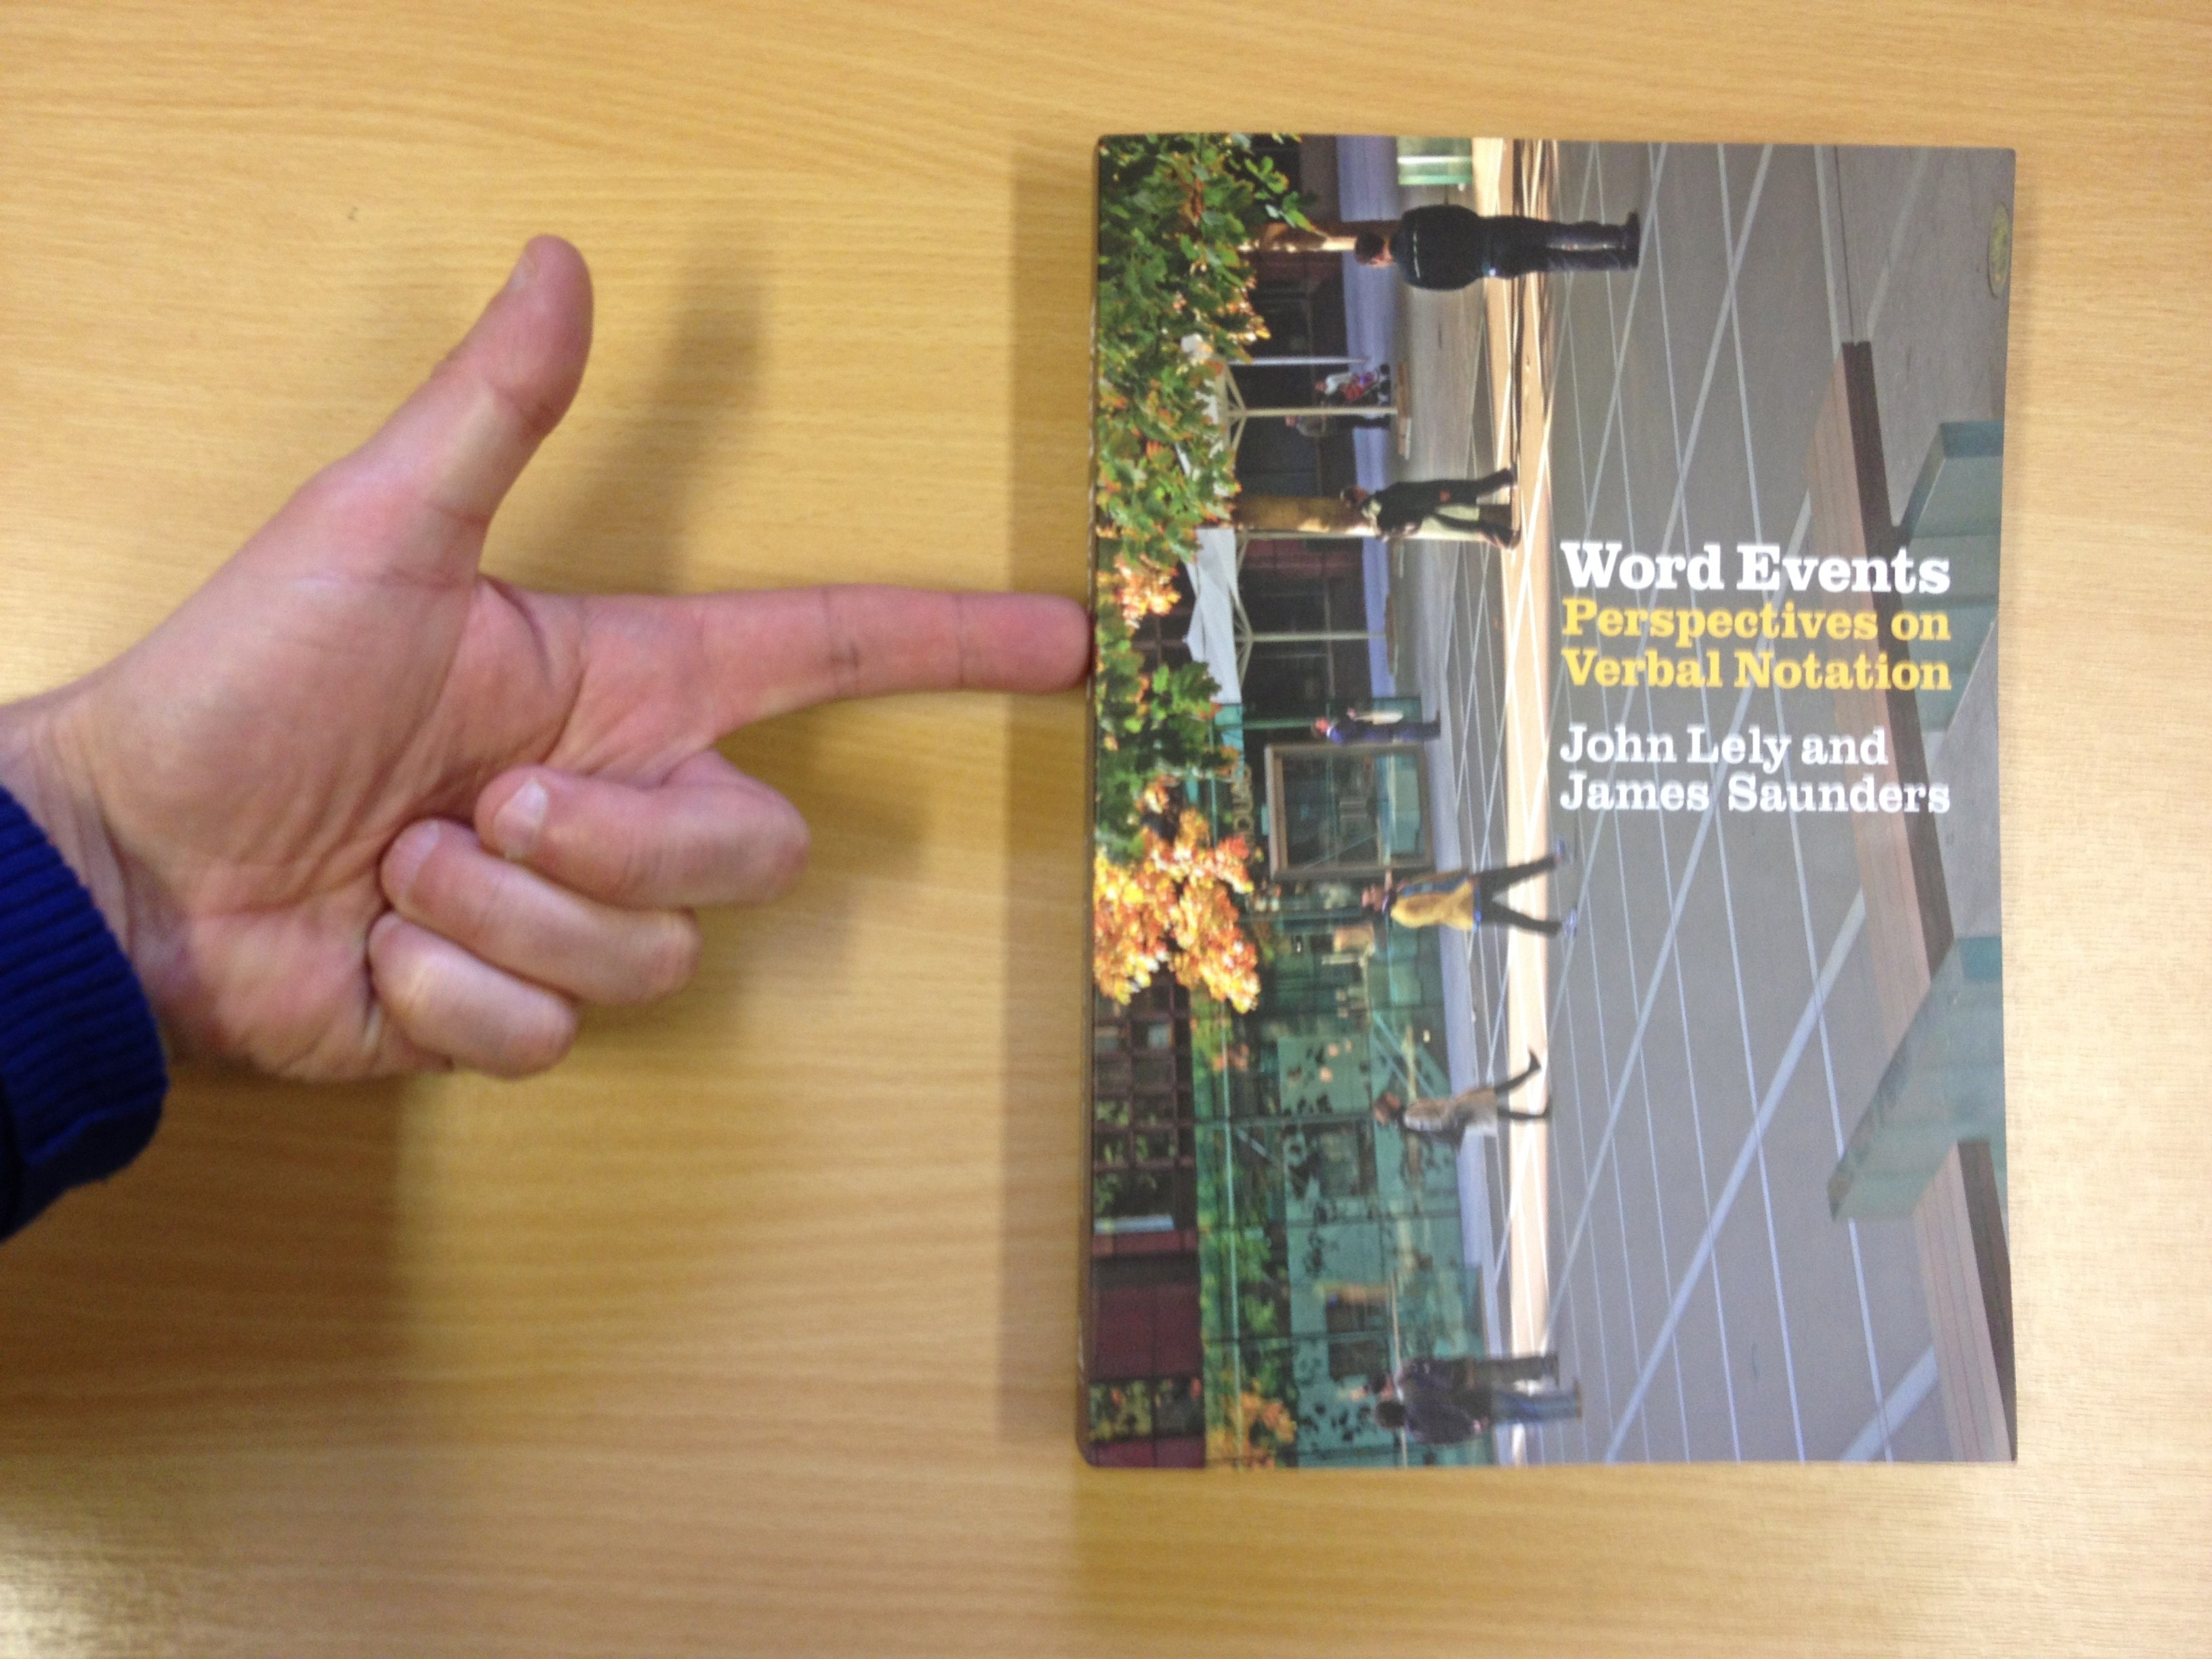 Word Events book published